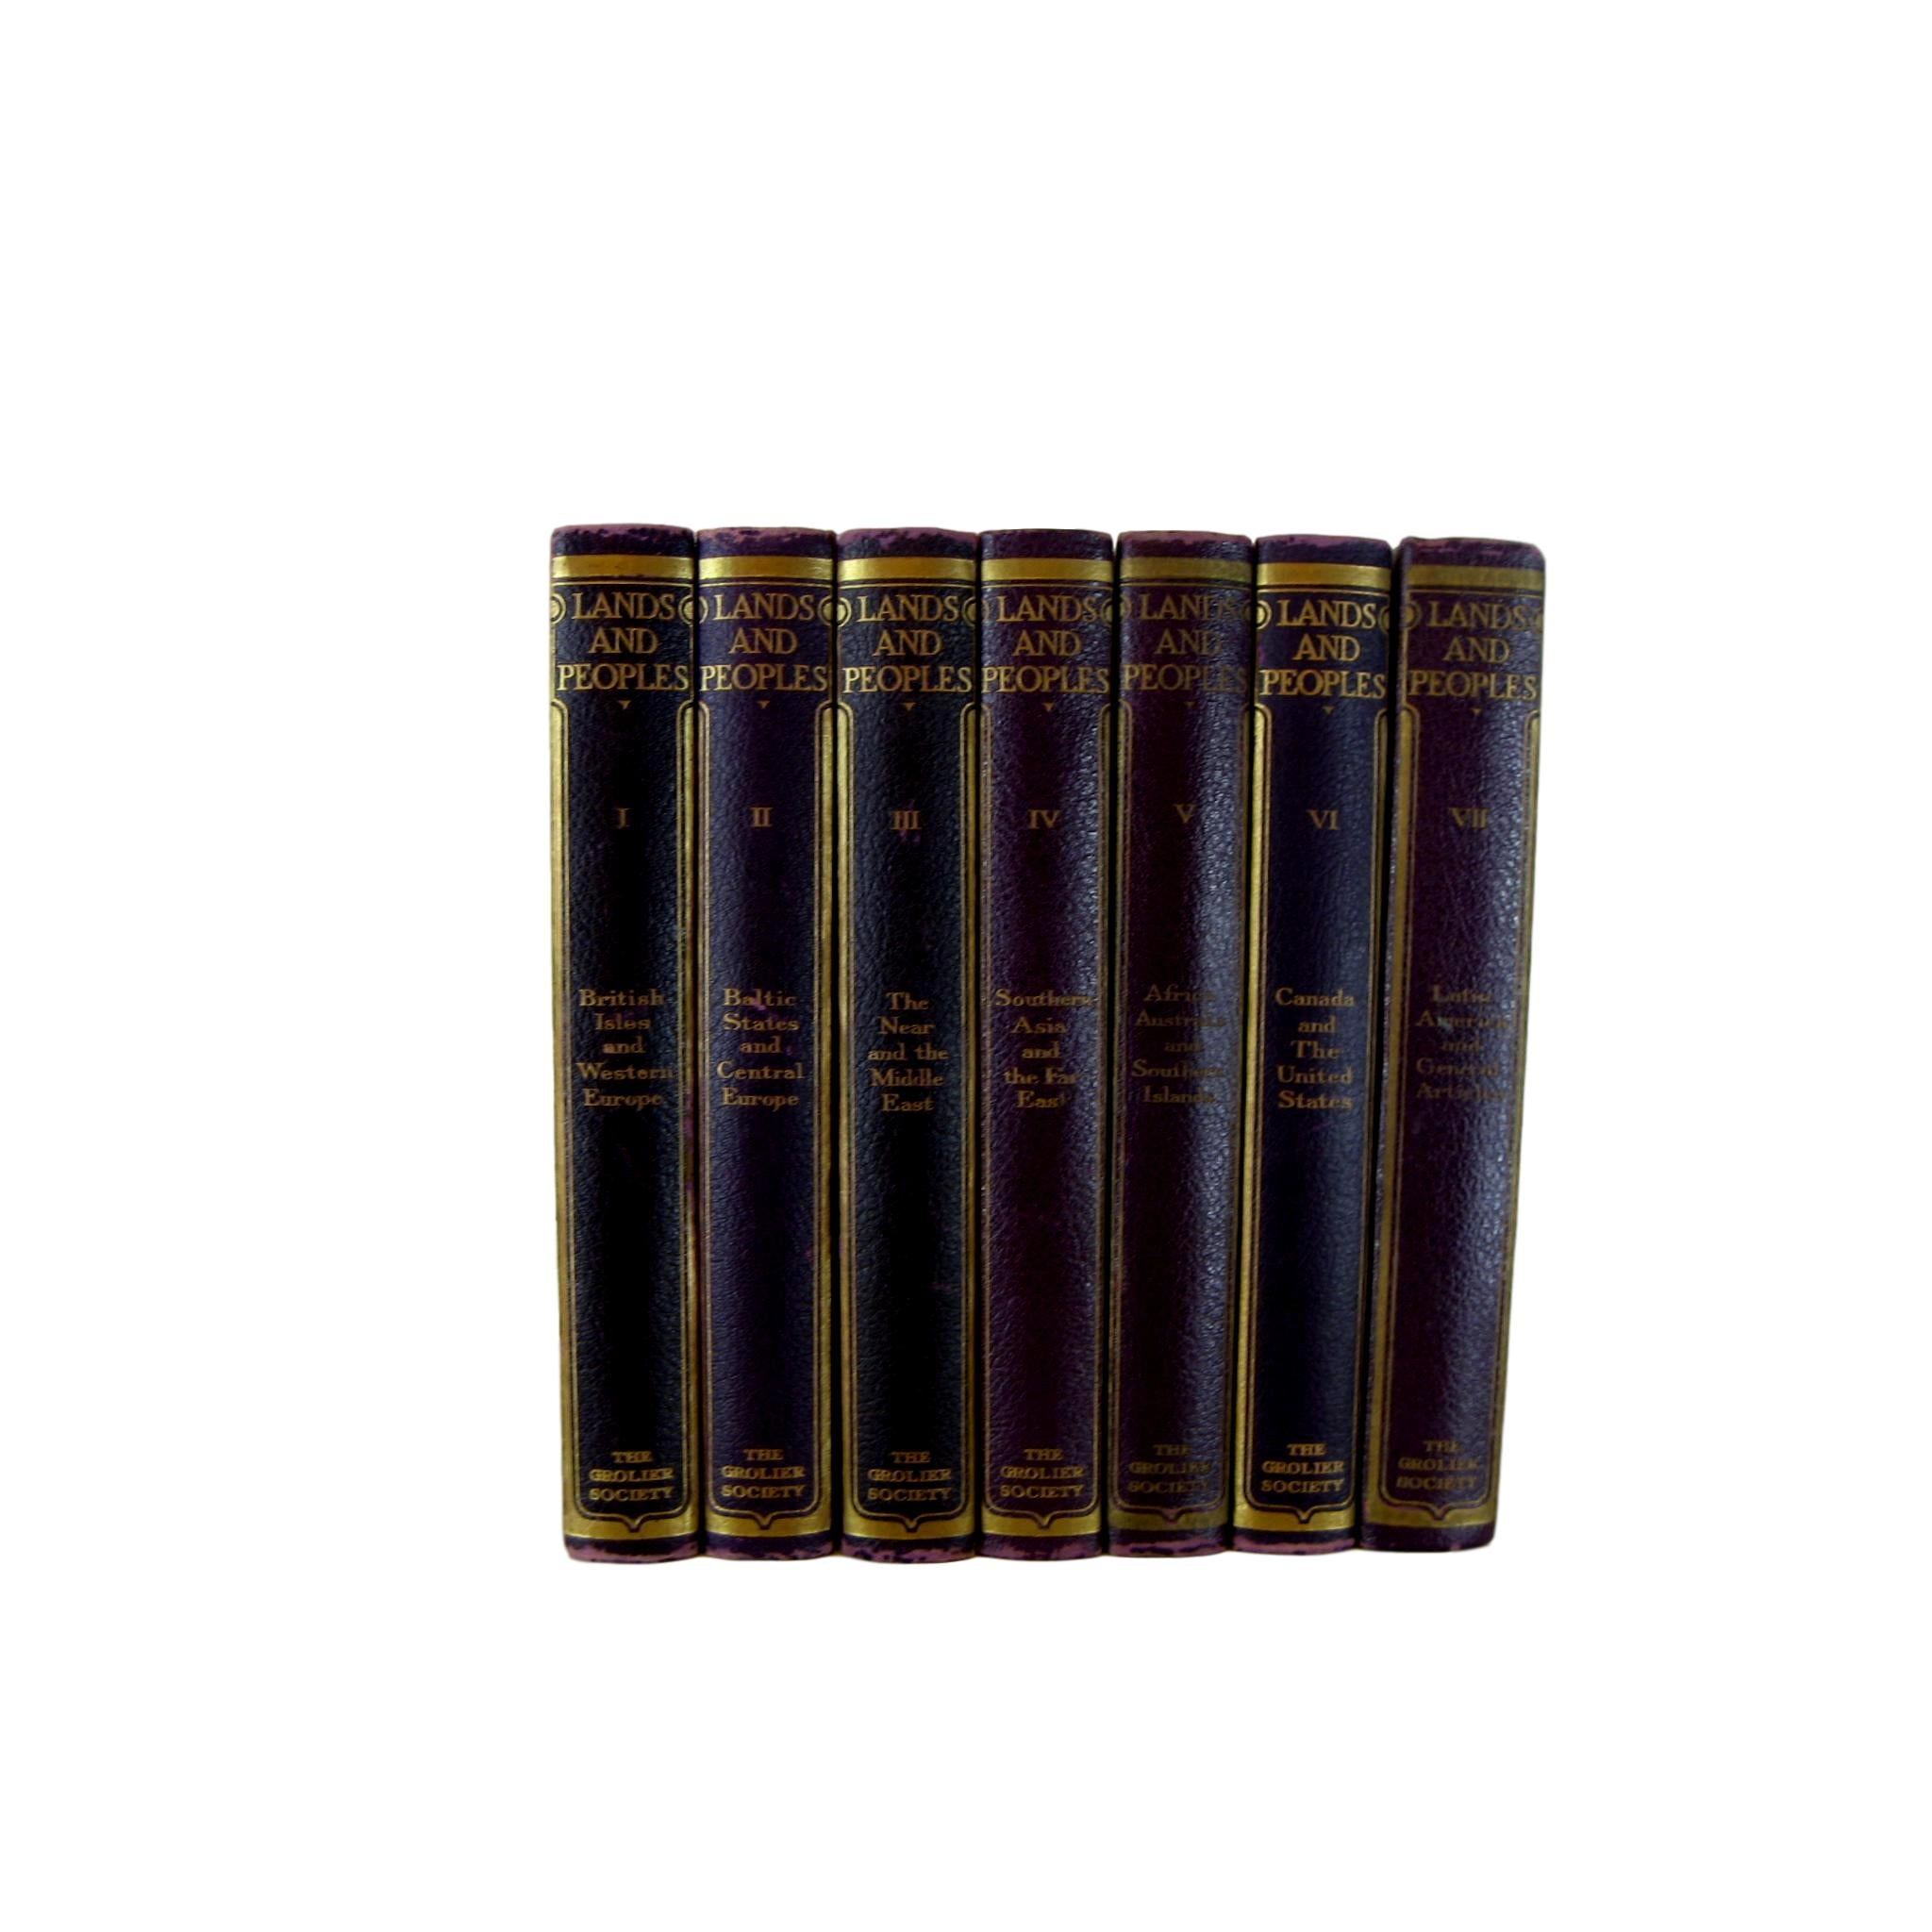 Purple Nursery Decor Vintage Decorative Book Set of Grolier Society's Lands & Peoples, S/7 - Decades of Vintage